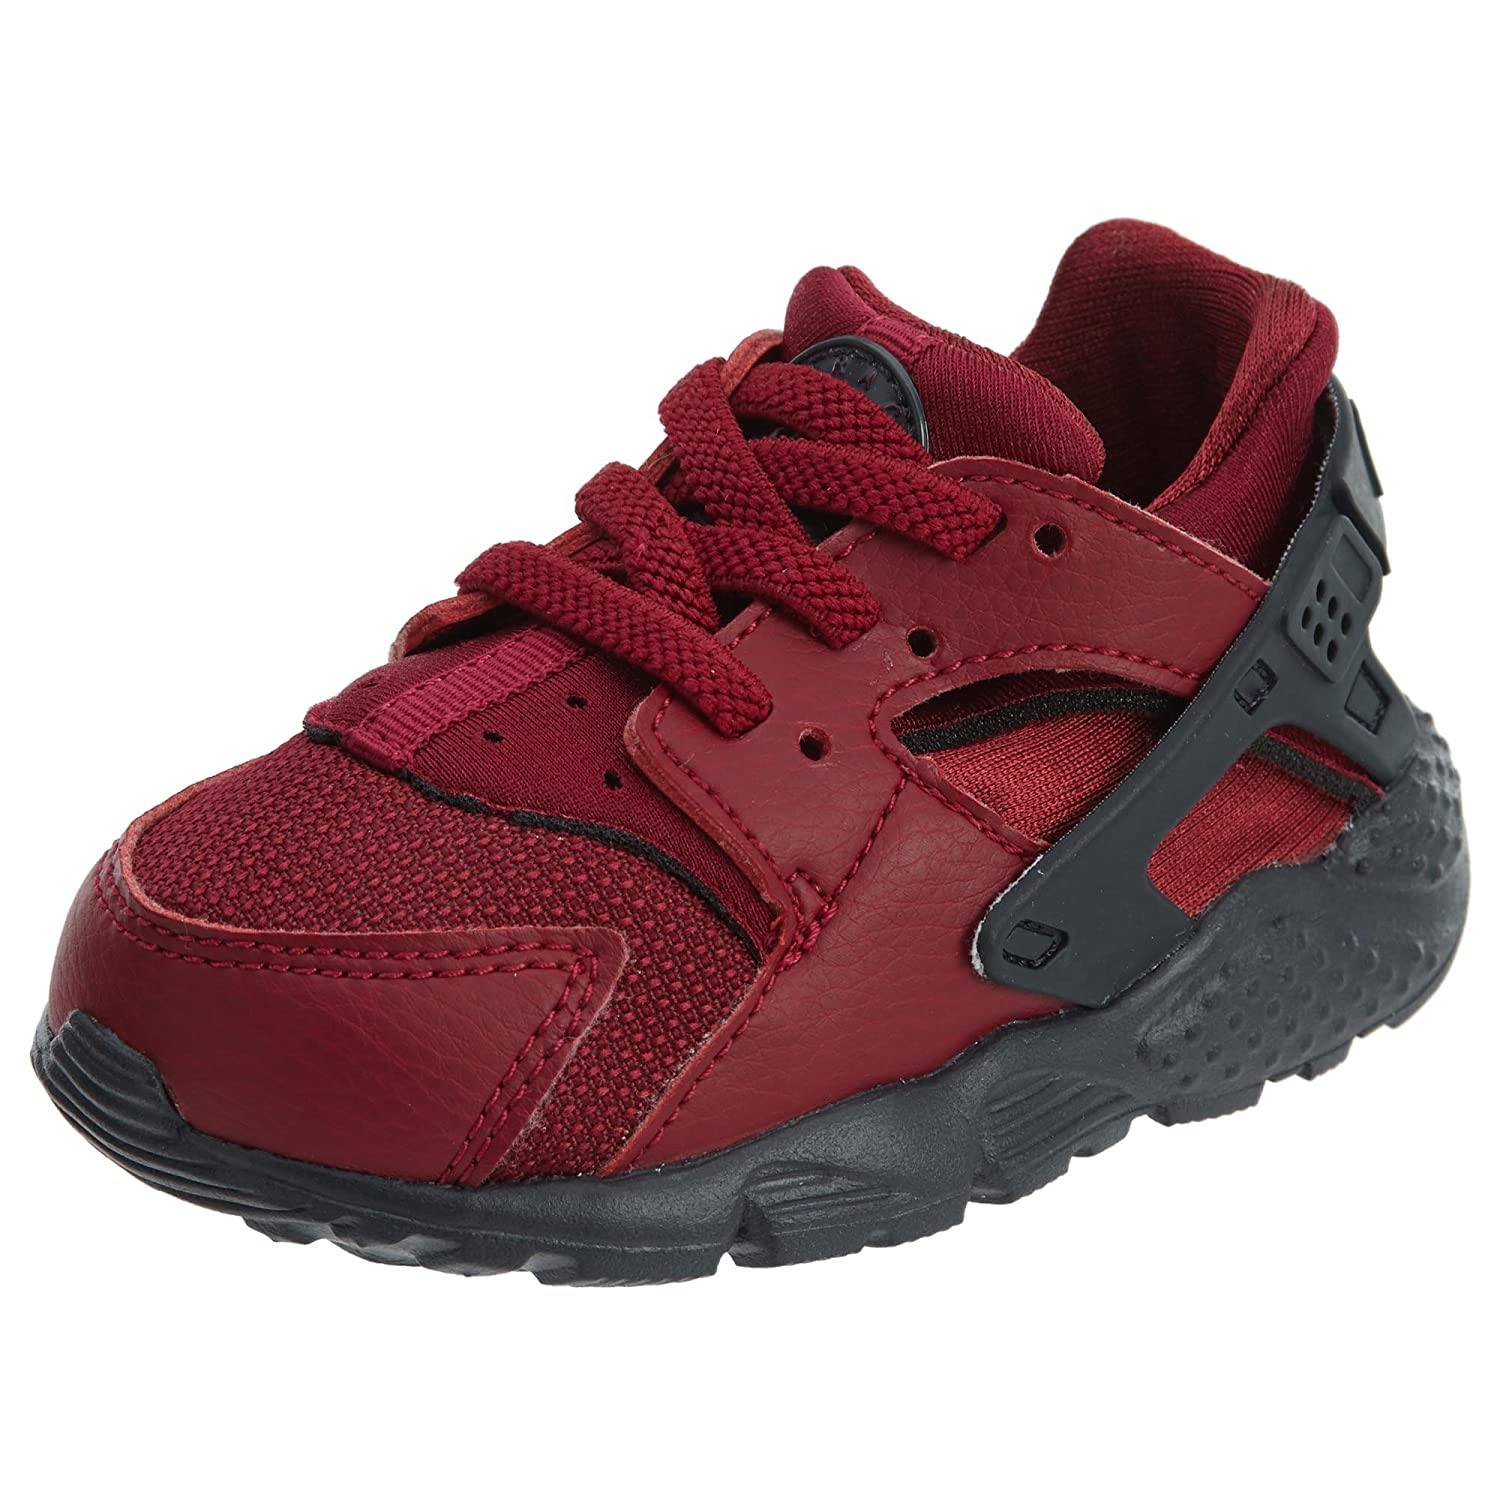 Nike Girls Toddler Huarache Run Sneakers 704950